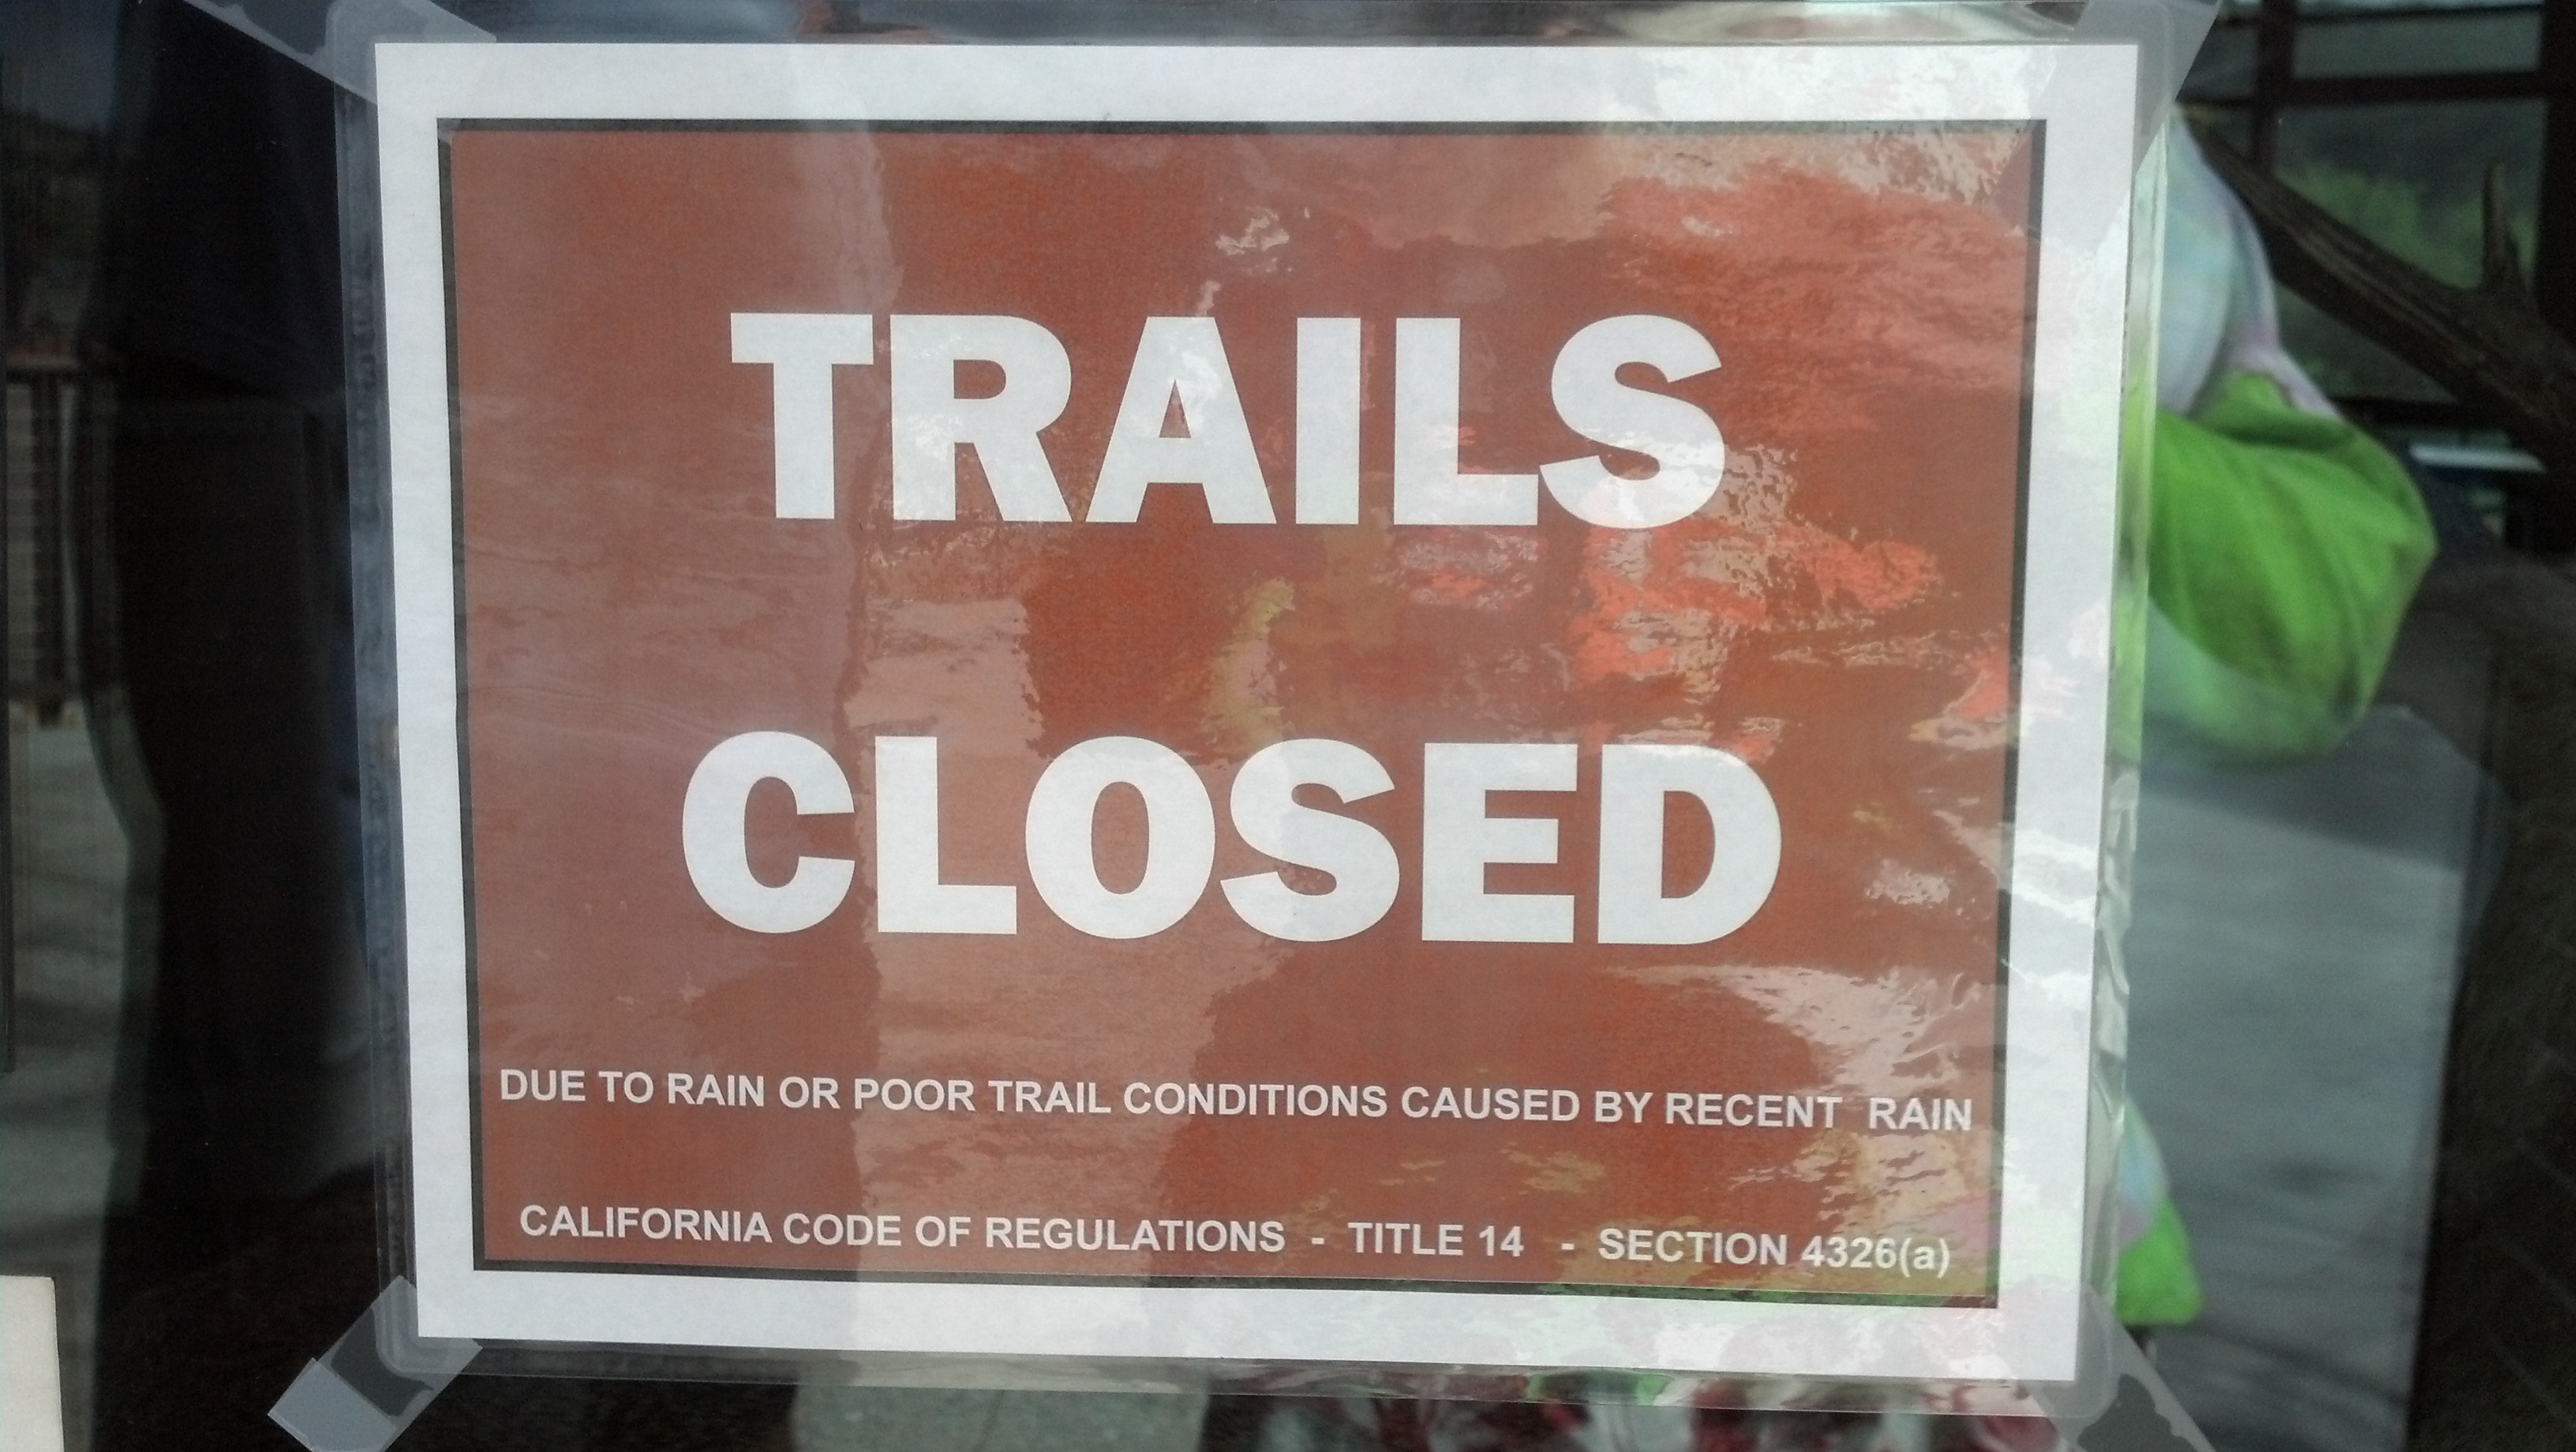 We met another group of folks who said they had just been out on the trails for 2 hours